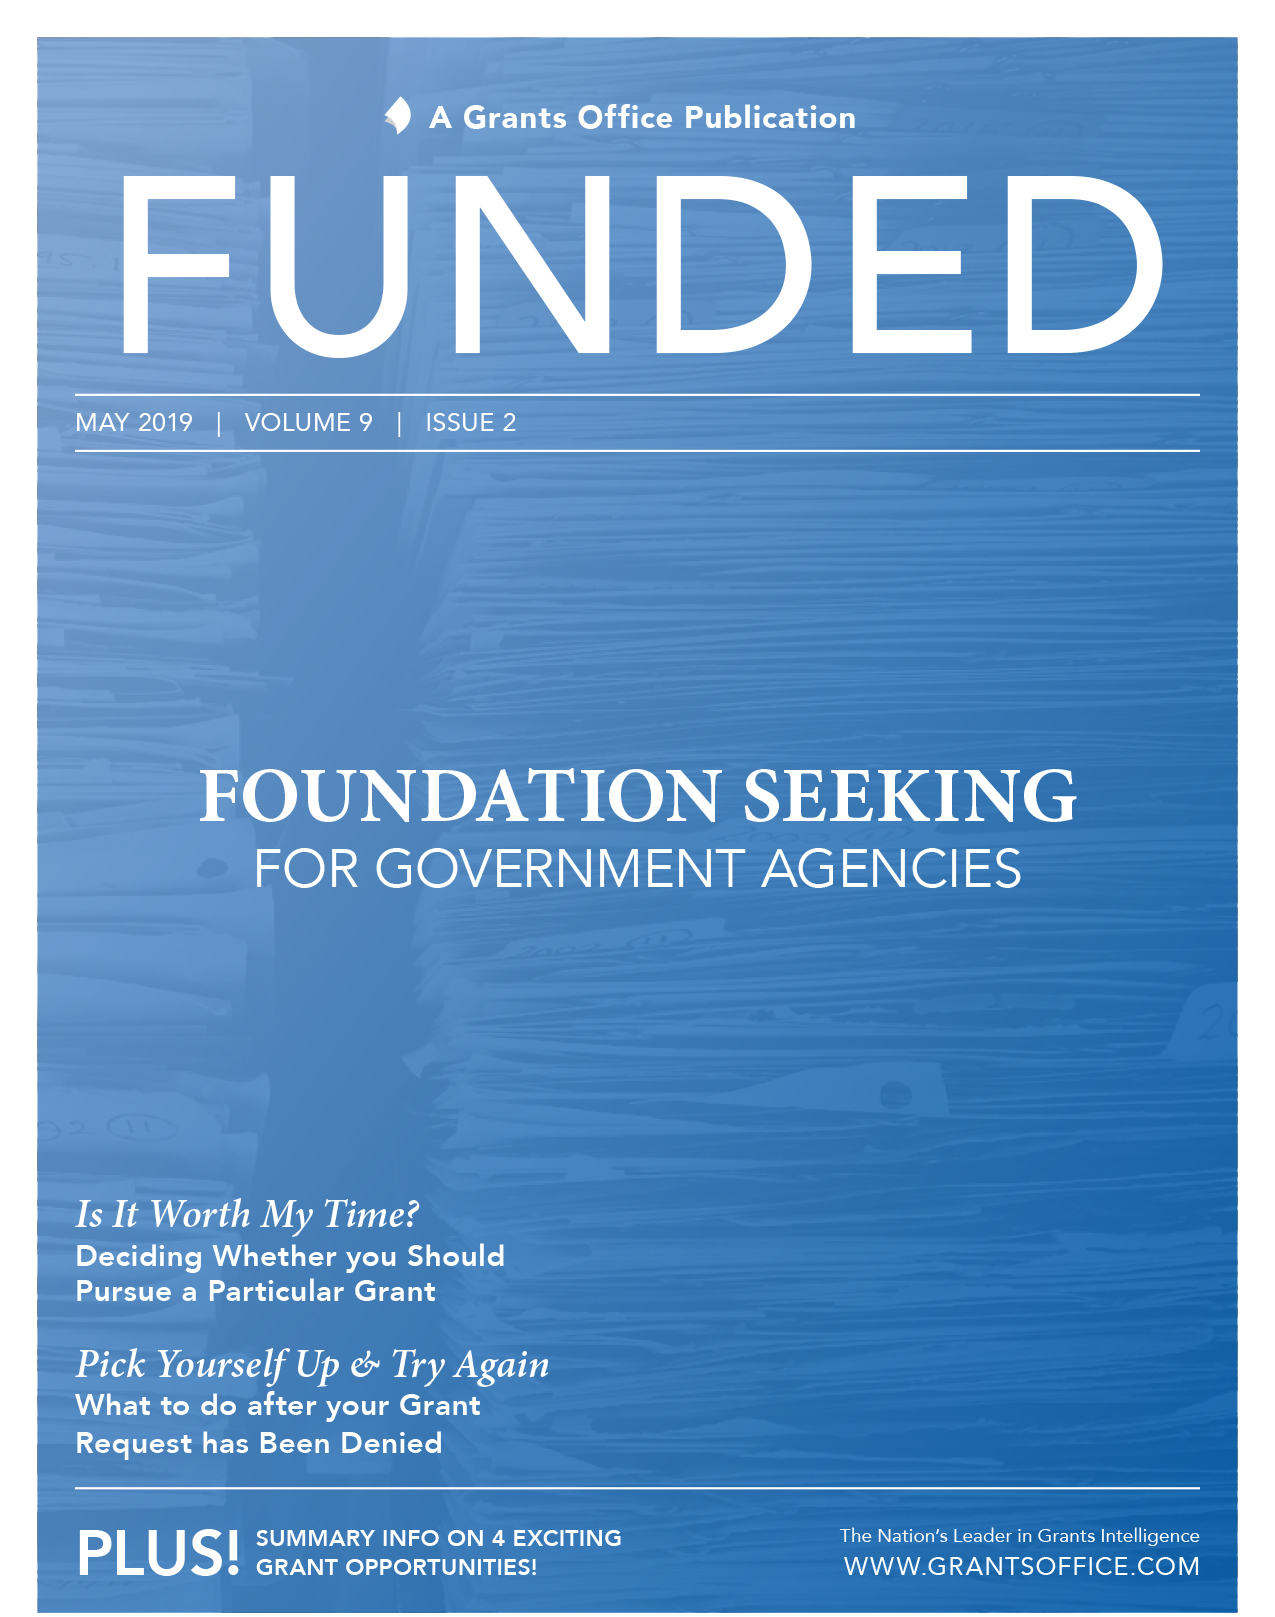 FUNDED - Grants Office Publication of Grant and Funding Analysis